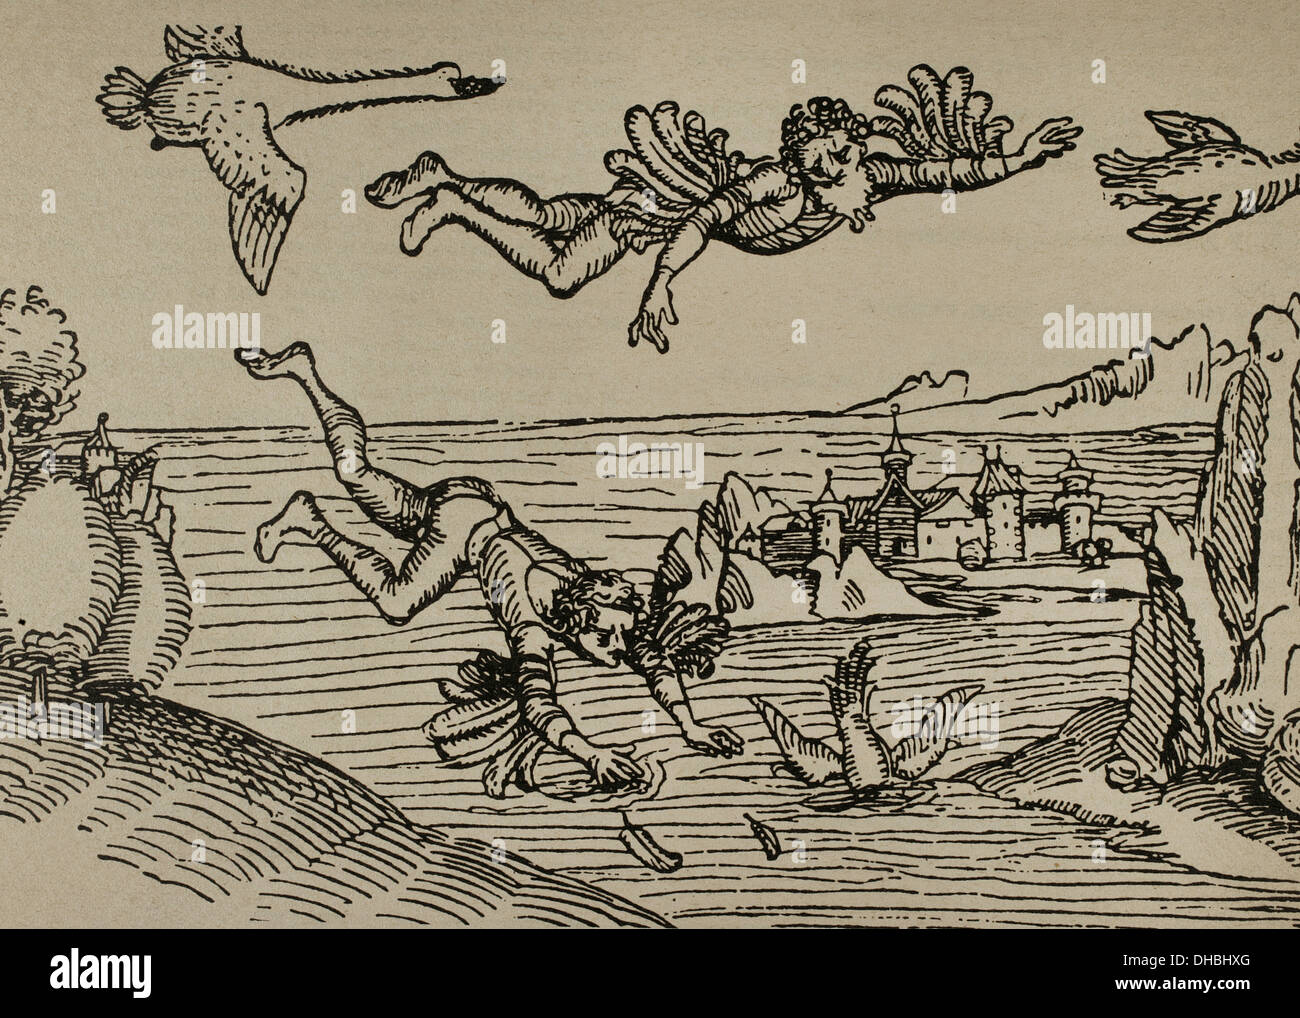 Icarus and his father Daedalus flying. Engraving by Albrecht Durer, 1493. - Stock Image